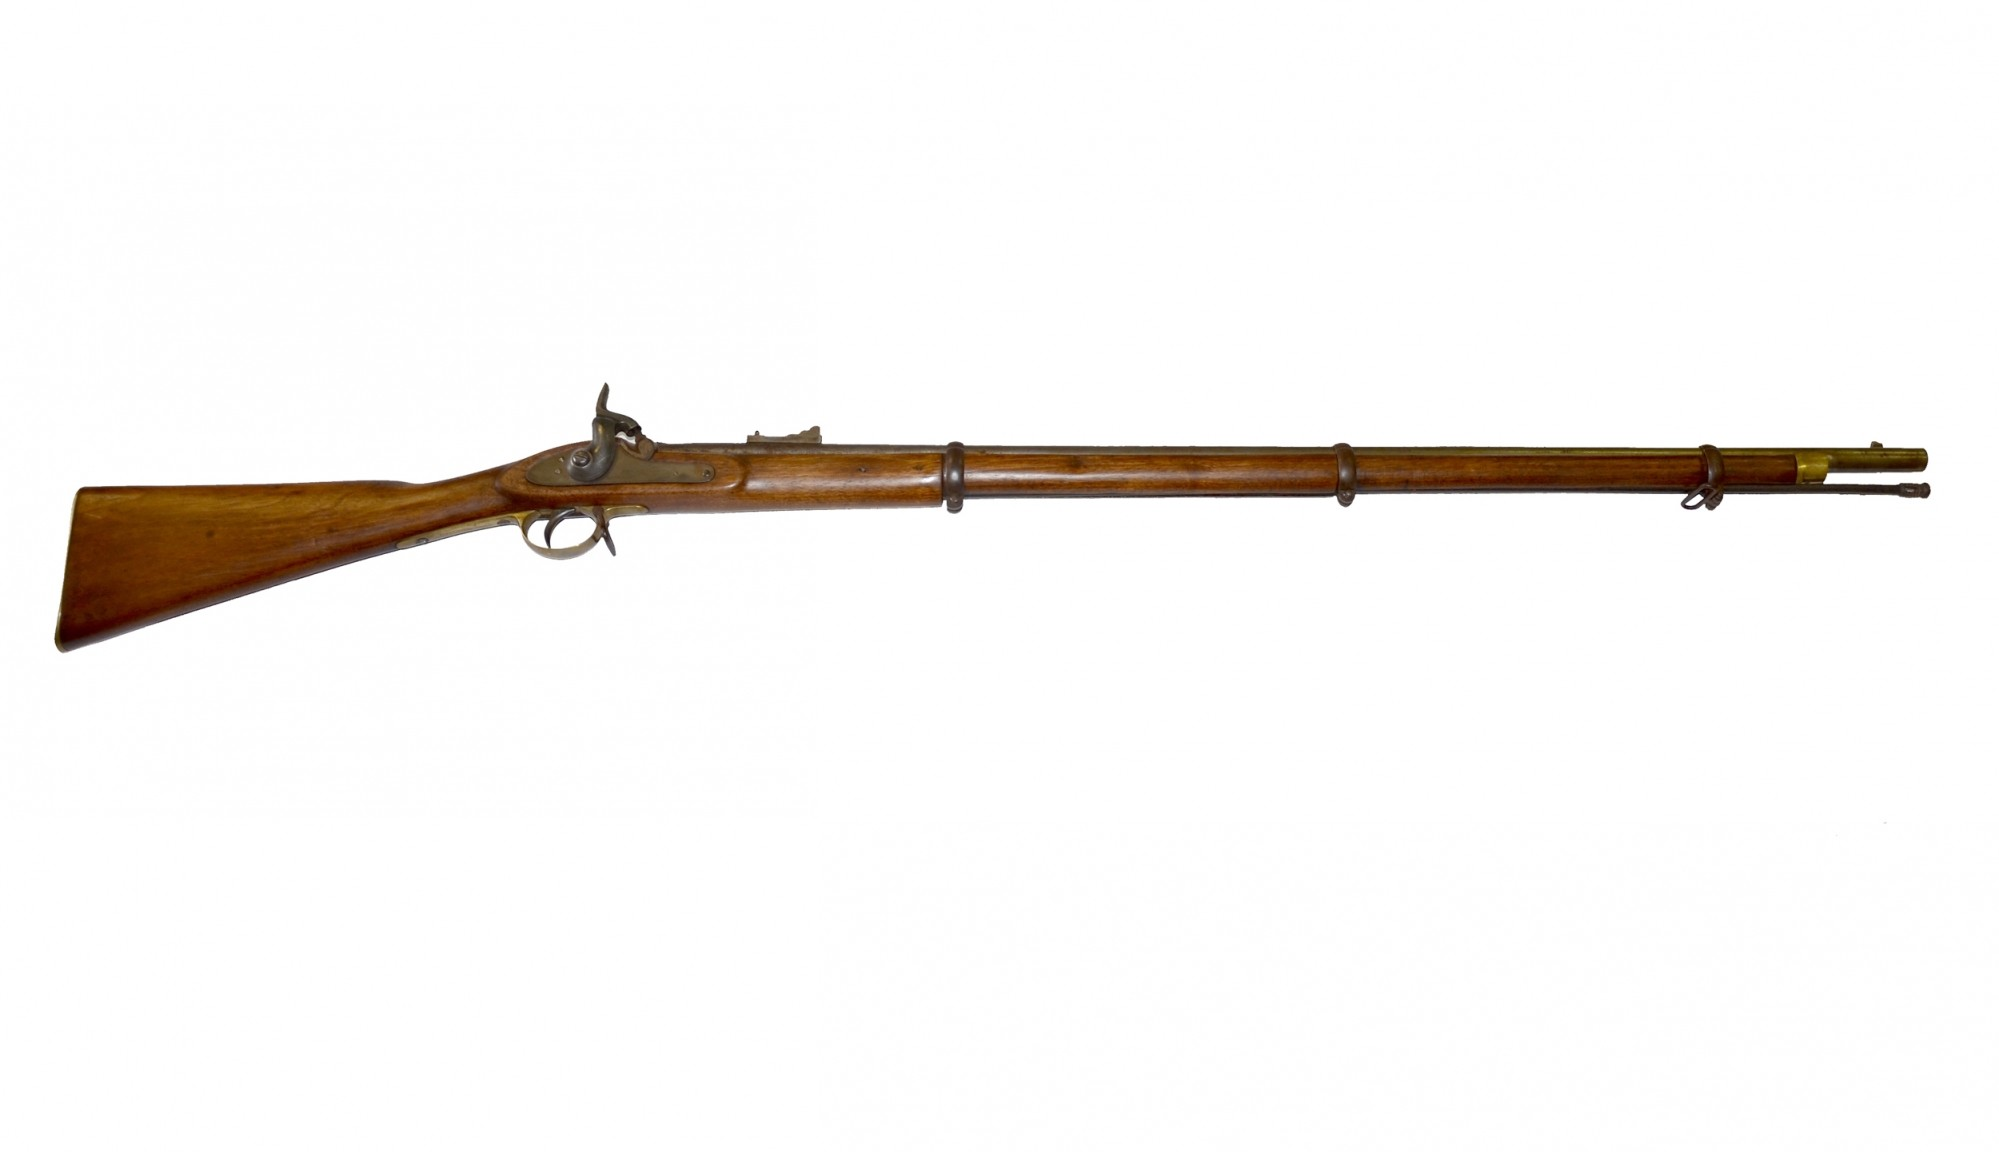 THE PATTERN 1853 ENFIELD RIFLE EPUB